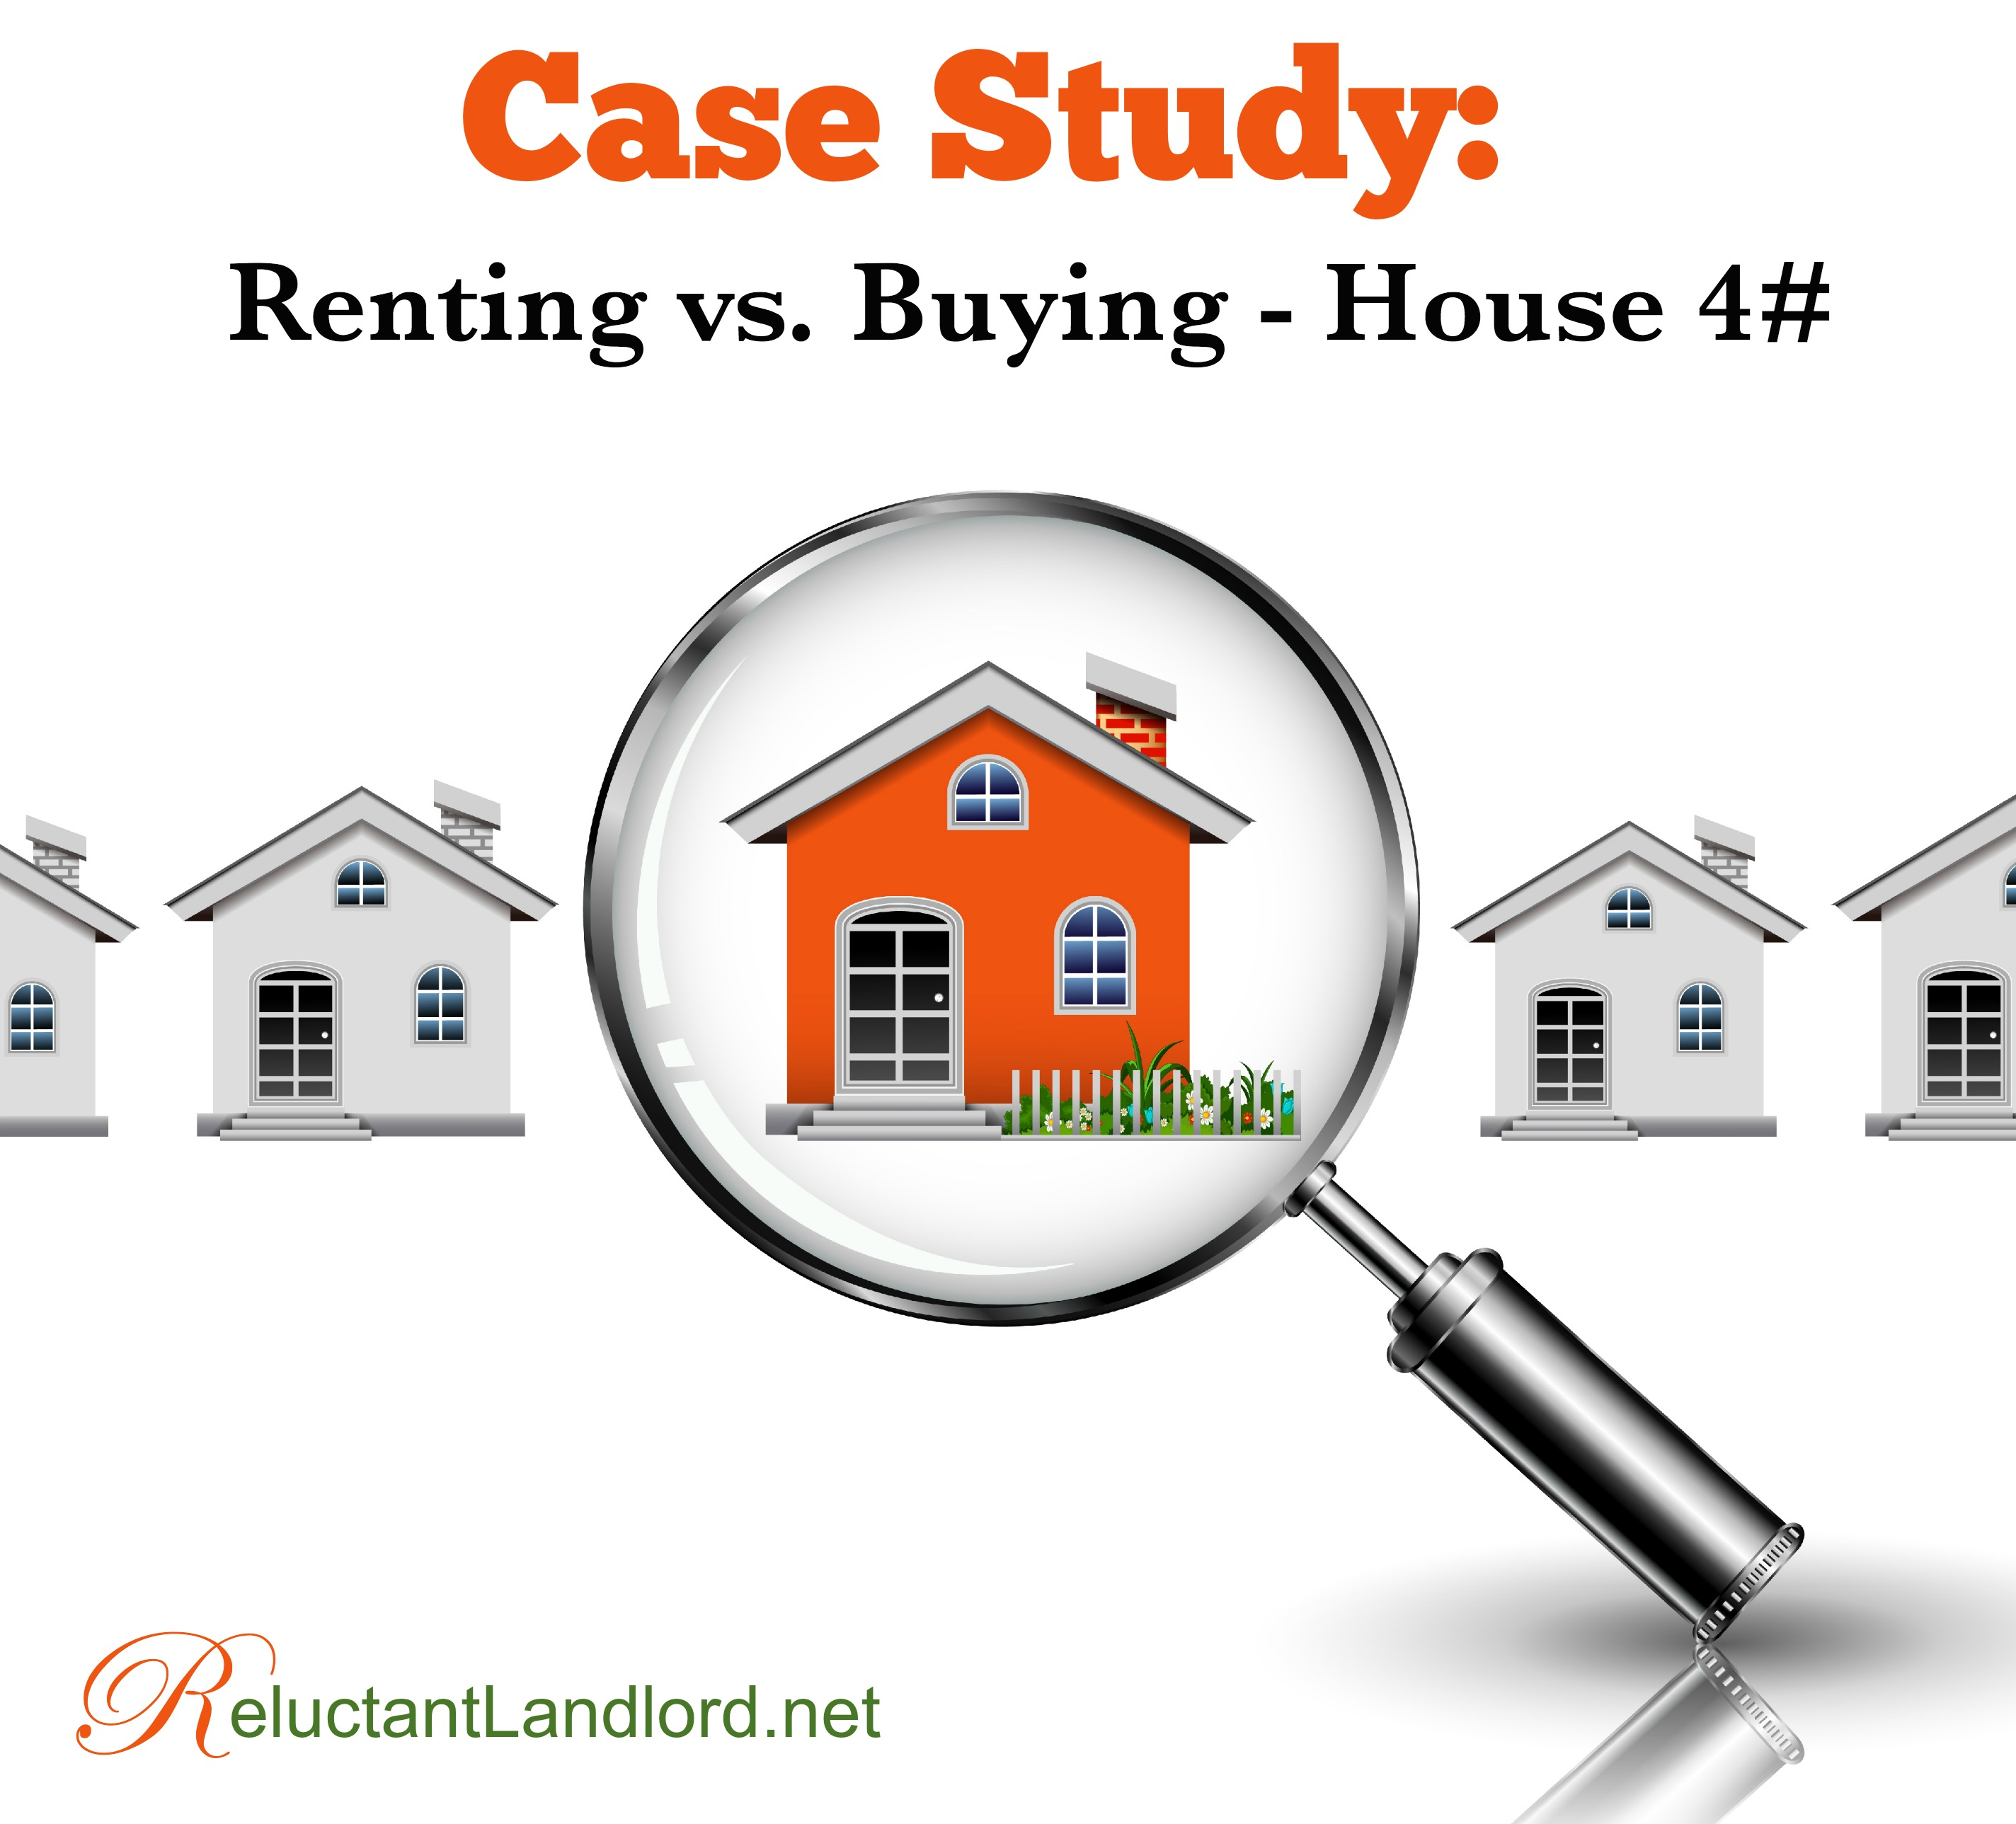 buying vs renting a comparative analysis In each case, buying such a property produced better results than renting, but it took over 15 years to realize them in dinh's analysis a chart comparing returns for condos, townhomes and.